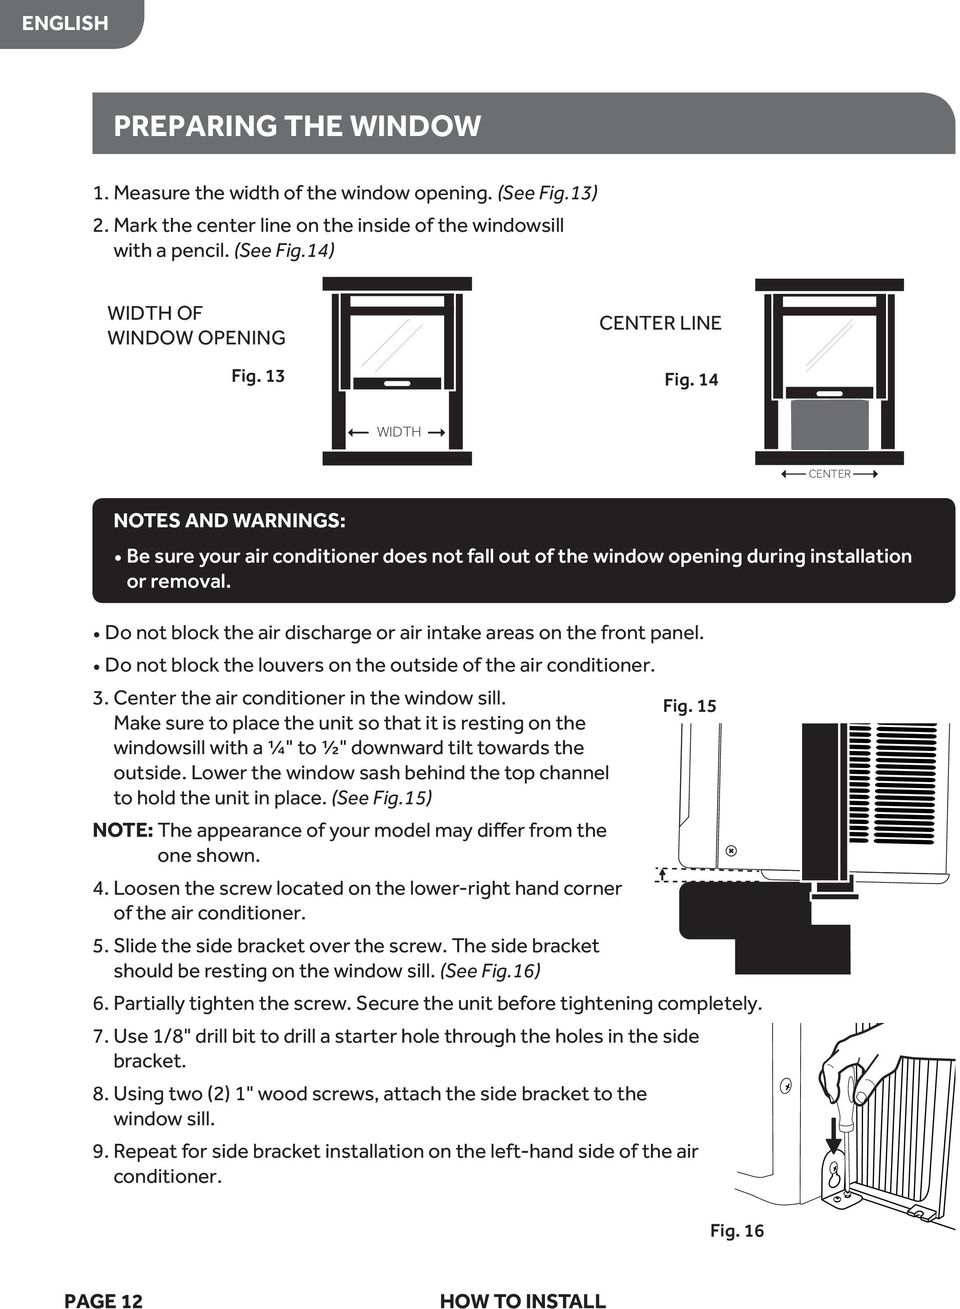 Do not block the air discharge or air intake areas on the front panel. Do not block the louvers on the outside of the air conditioner. 3. Center the air conditioner in the window sill.